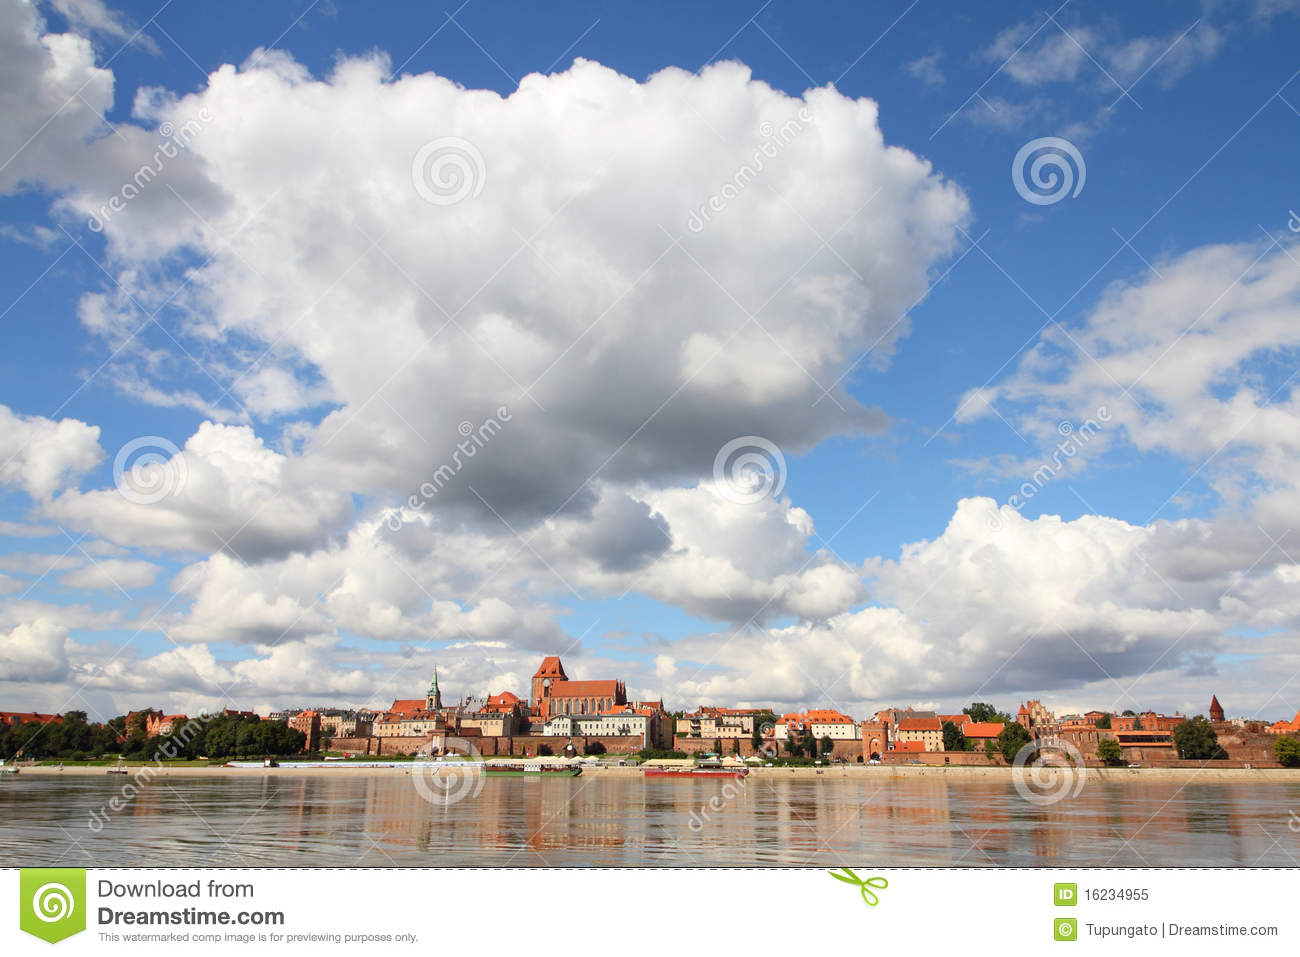 Download Torun stock image. Image of wisla, poland, reflection - 16234955